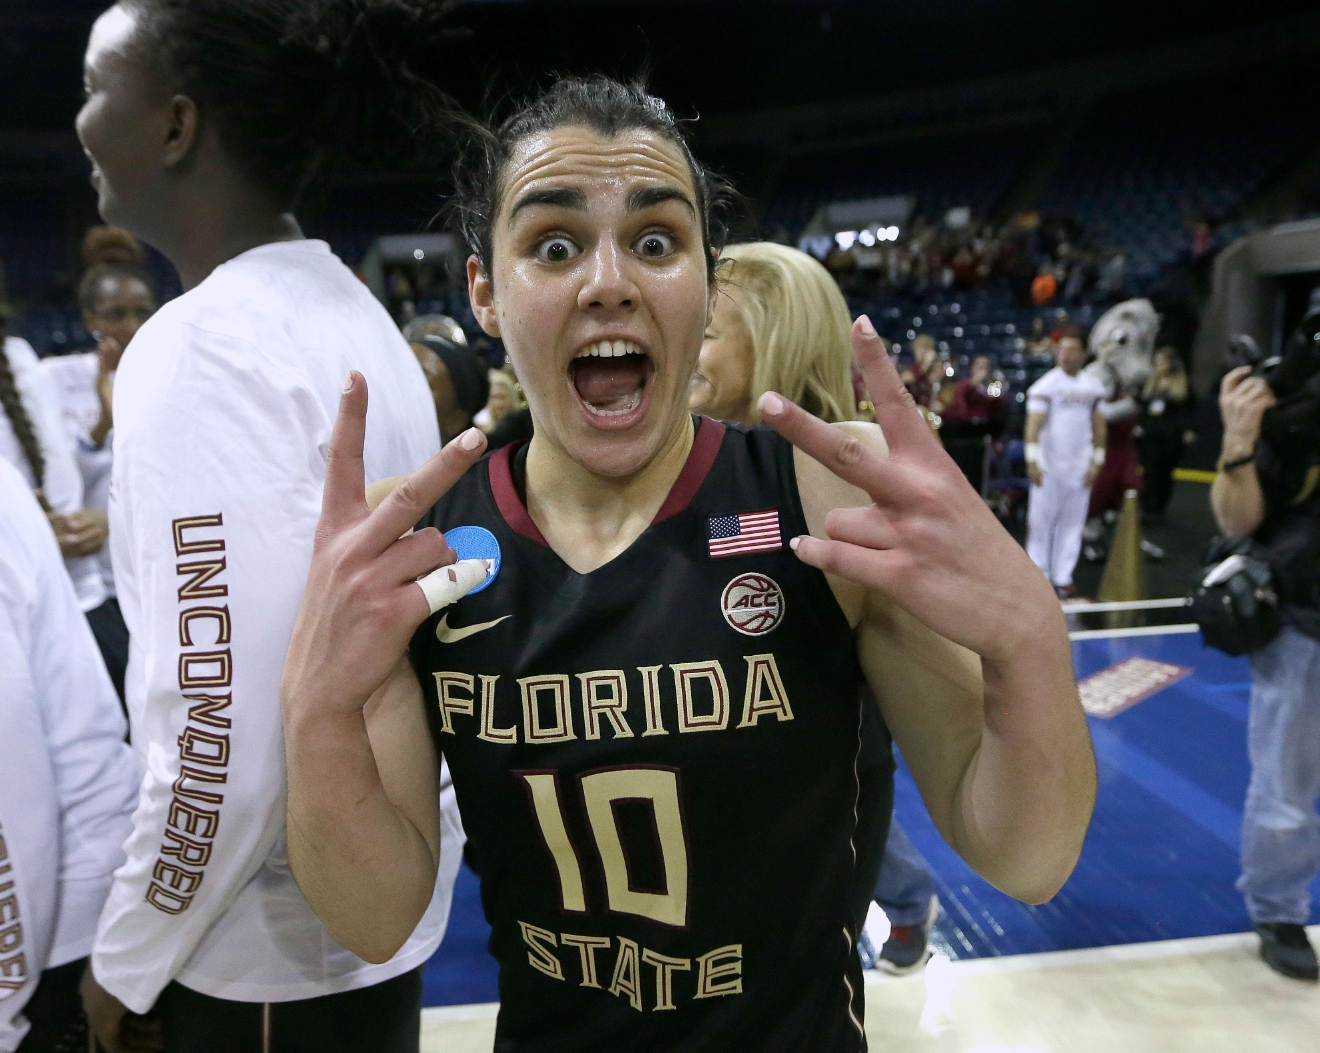 Florida State guard Leticia Romero celebrates after defeating Oregon State 66-53 in a regional semi-final round game of an NCAA college basketball tournament, Saturday, March 25, 2017, in Stockton, Calif. (AP Photo/Rich Pedroncelli)